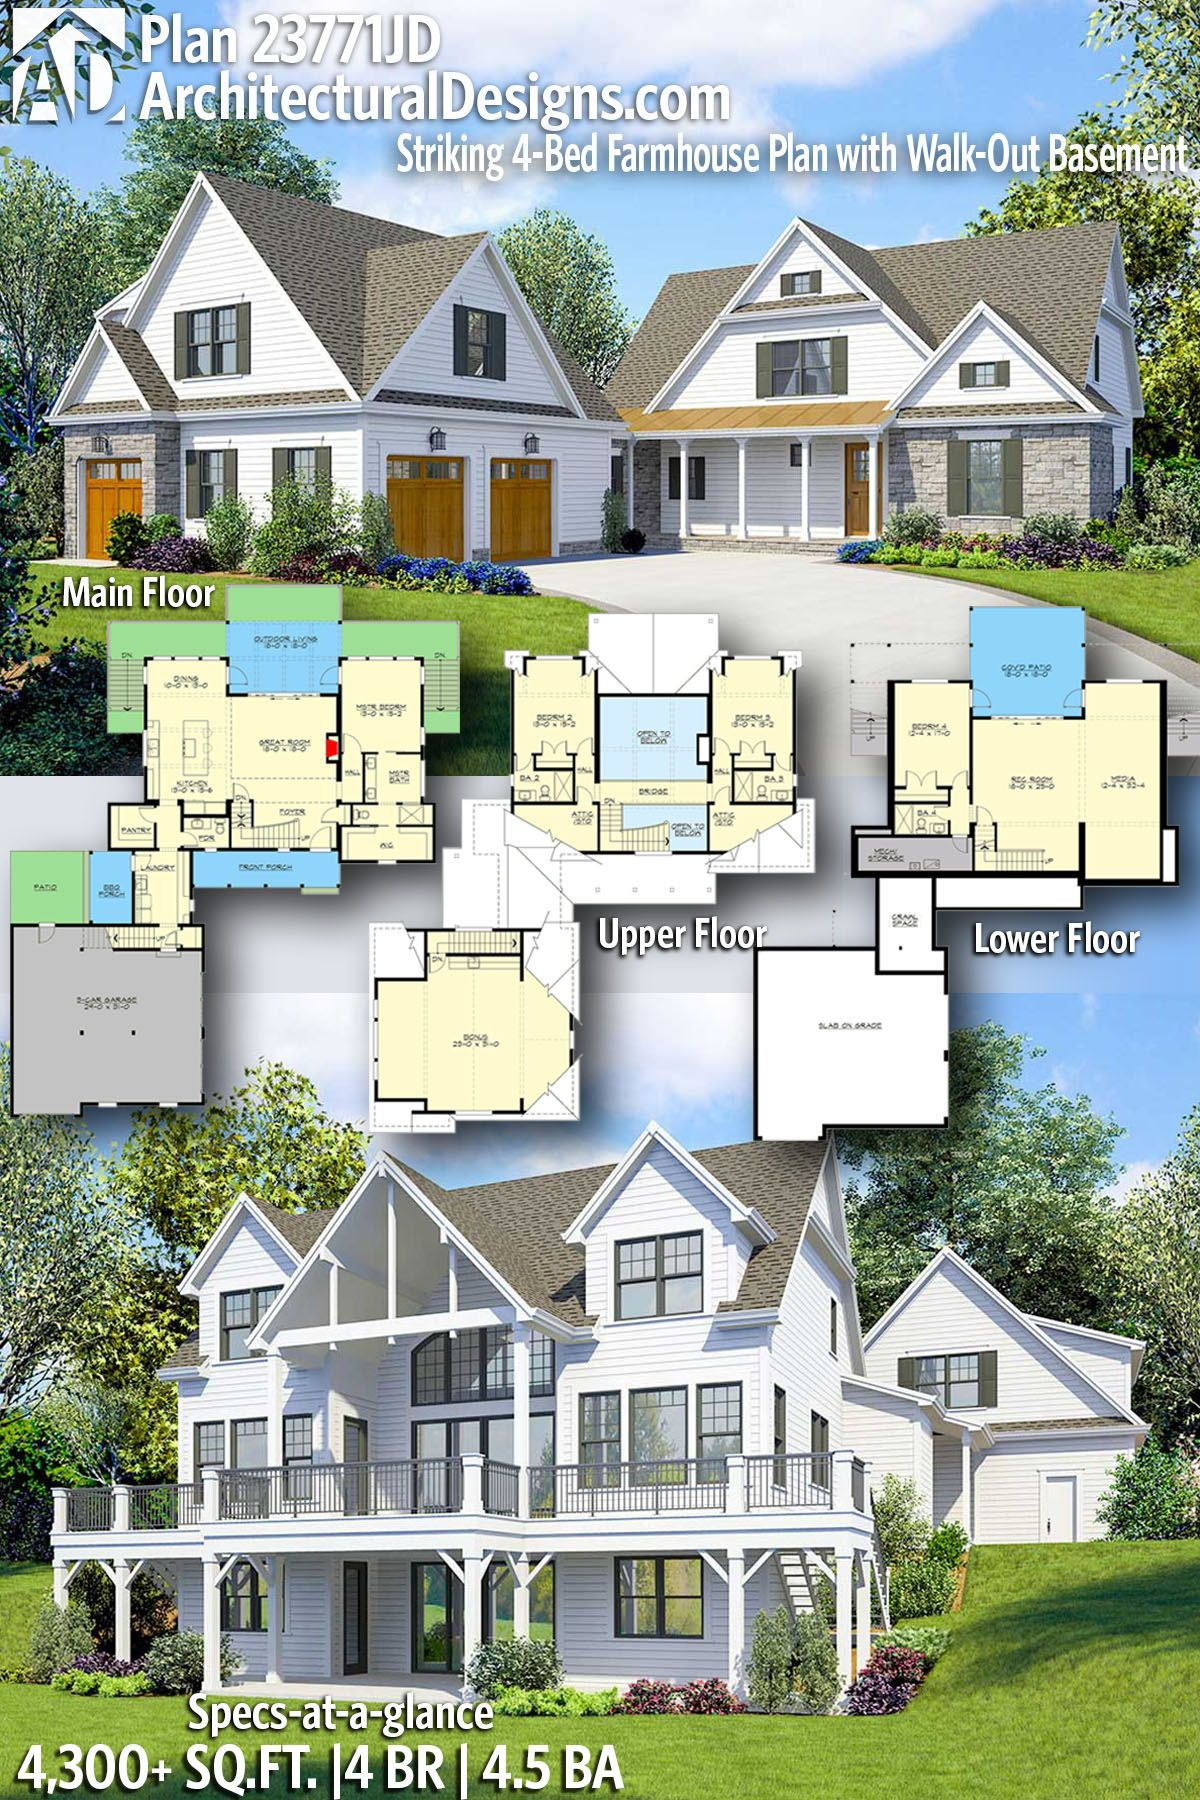 Architectural designs farmhouse plan jd gives you bedrooms baths and sq also best homes for the sloping lot images in architecture rh pinterest